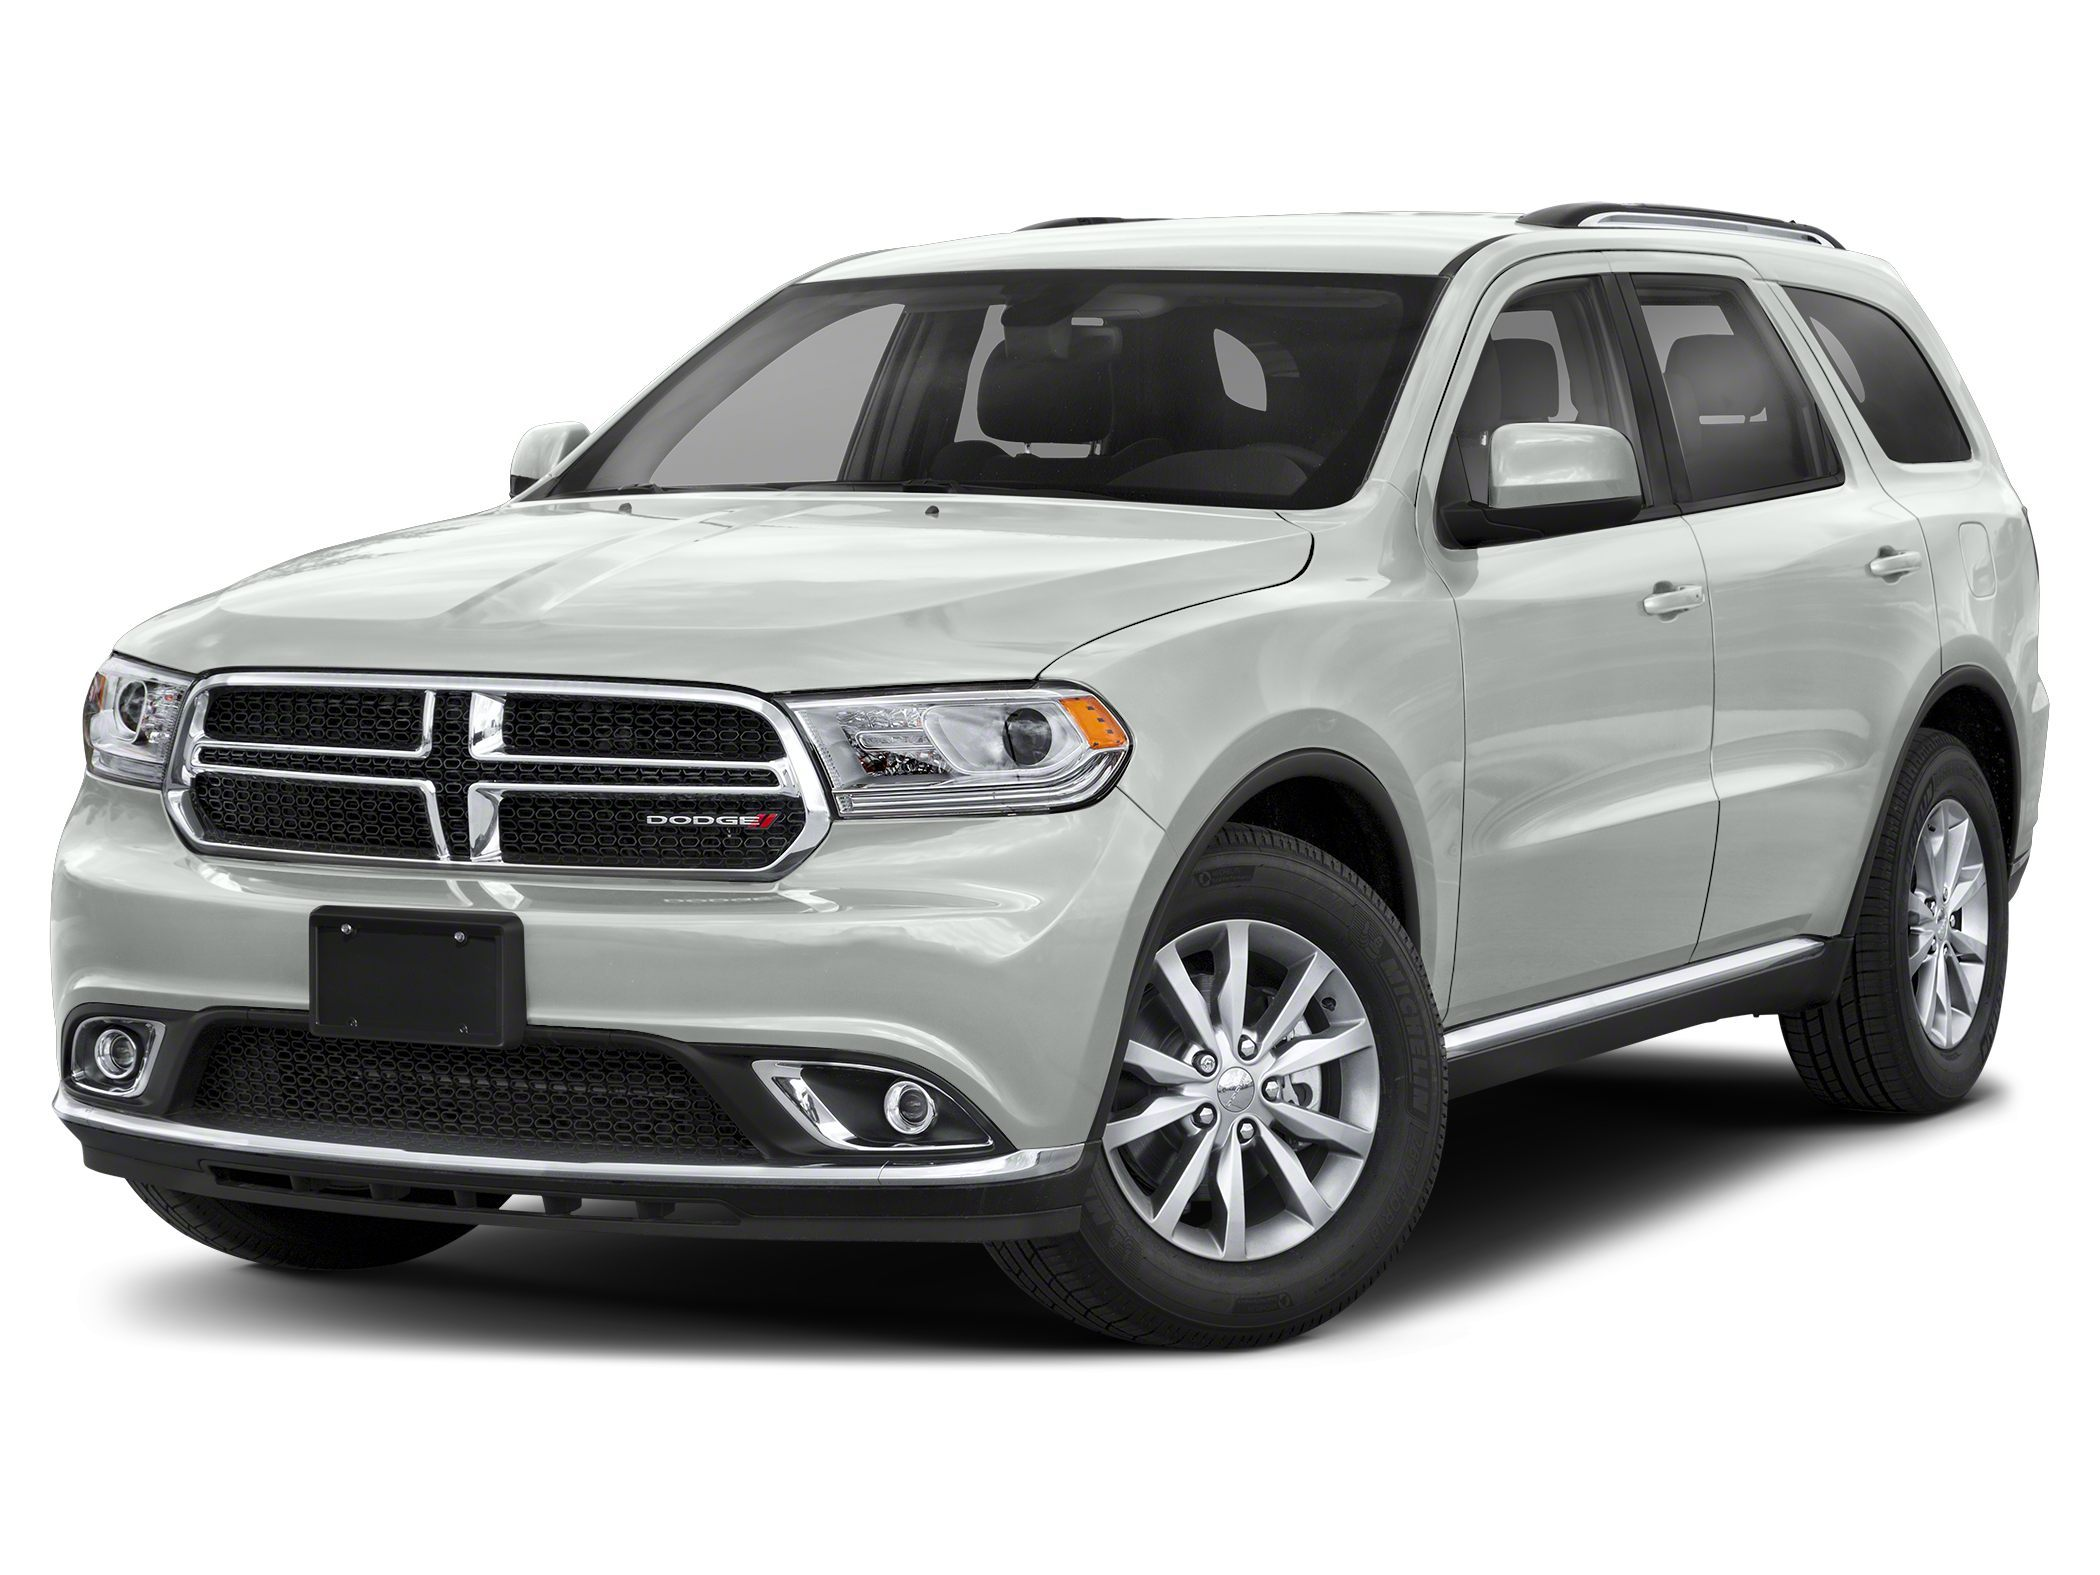 used 2019 Dodge Durango car, priced at $36,900